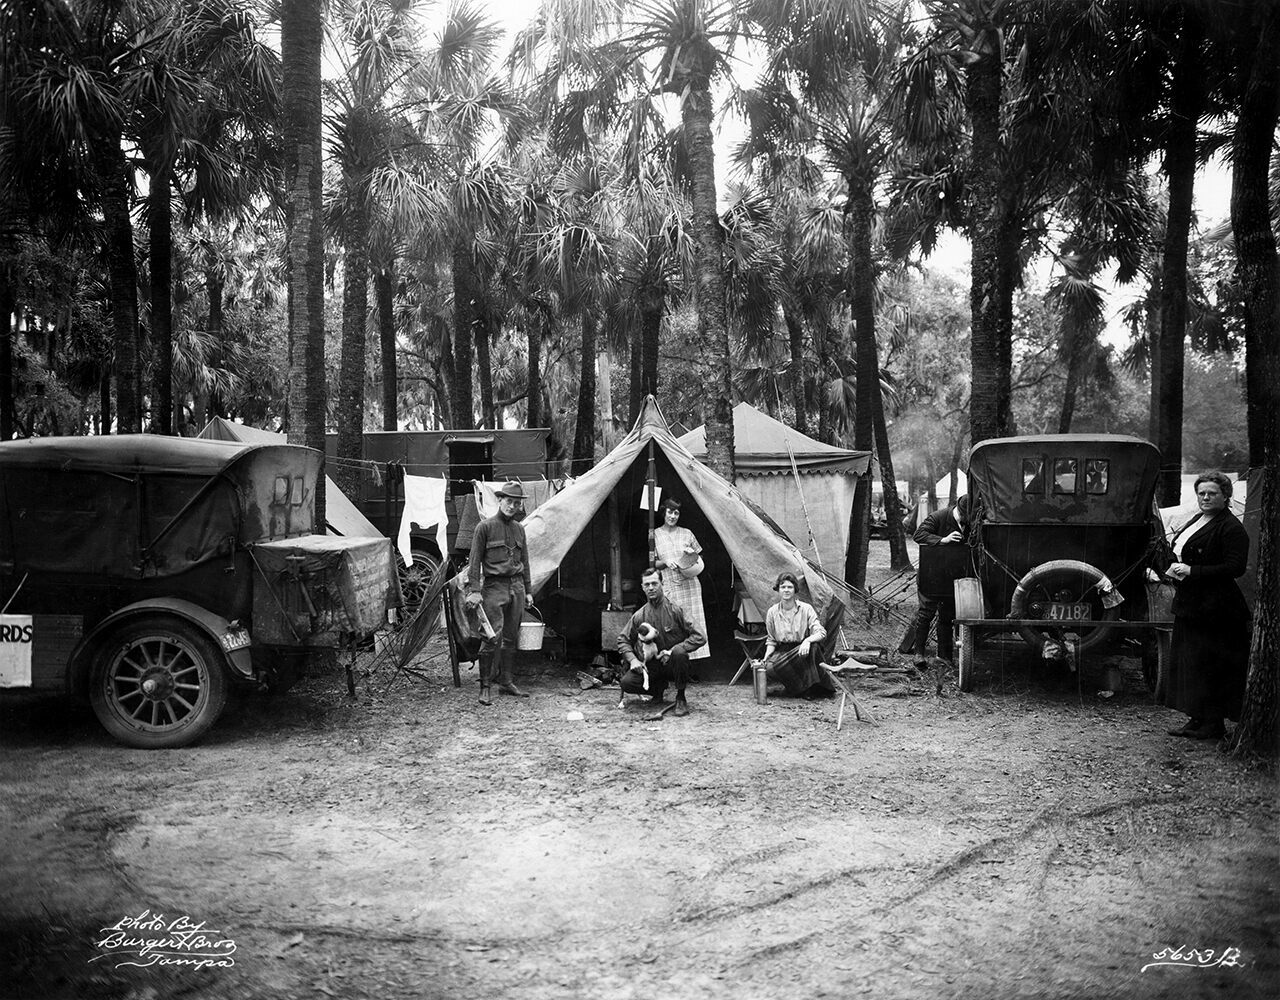 Early RV campers pose for a photo on Christmas Day, 1920, in Desoto Park, Florida—about a year after the first Tin Can Tourists' assembly. The group's ethos—an incongruous mixture of escapism and orderliness—inspired American auto campers to load up their Model Ts and drive along freshly paved roads, searching for scenic spots to camp.